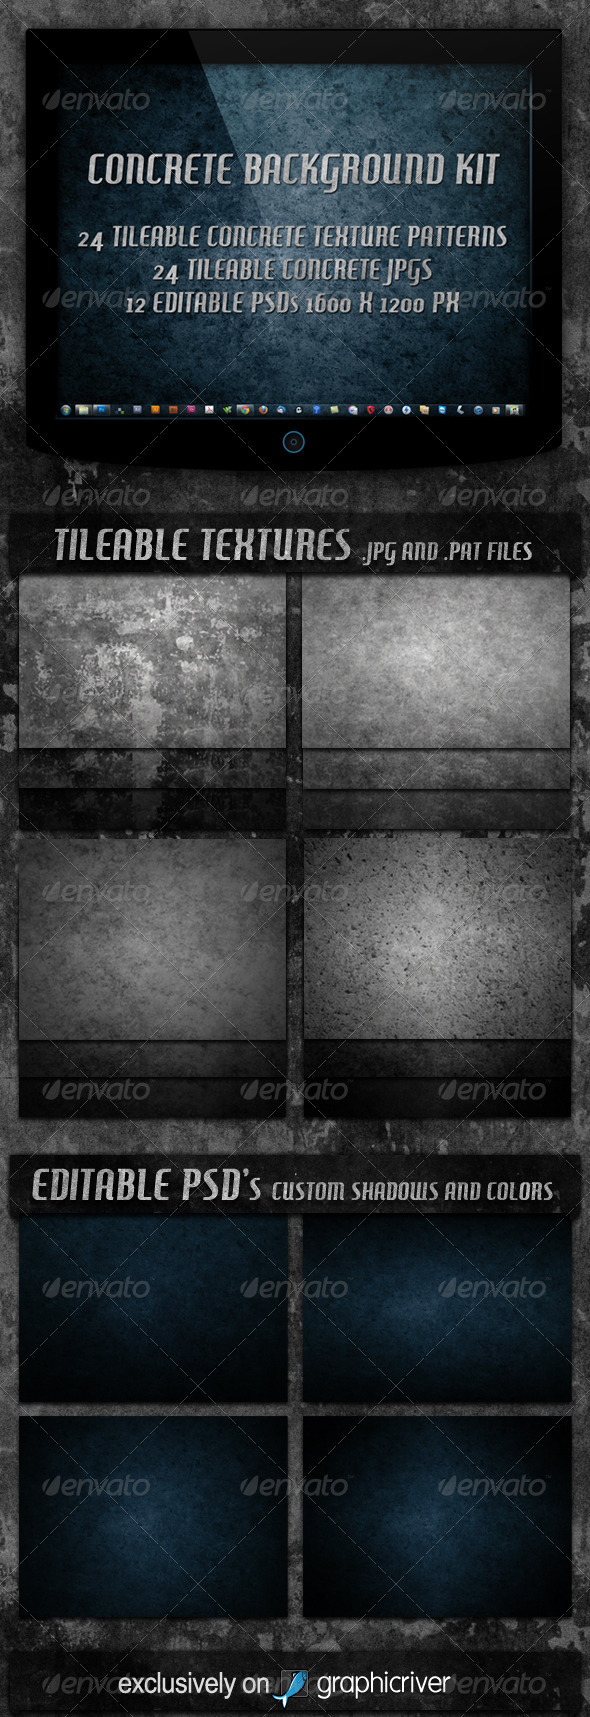 GraphicRiver 4 Tileable Concrete Textures Background Kit 2255147